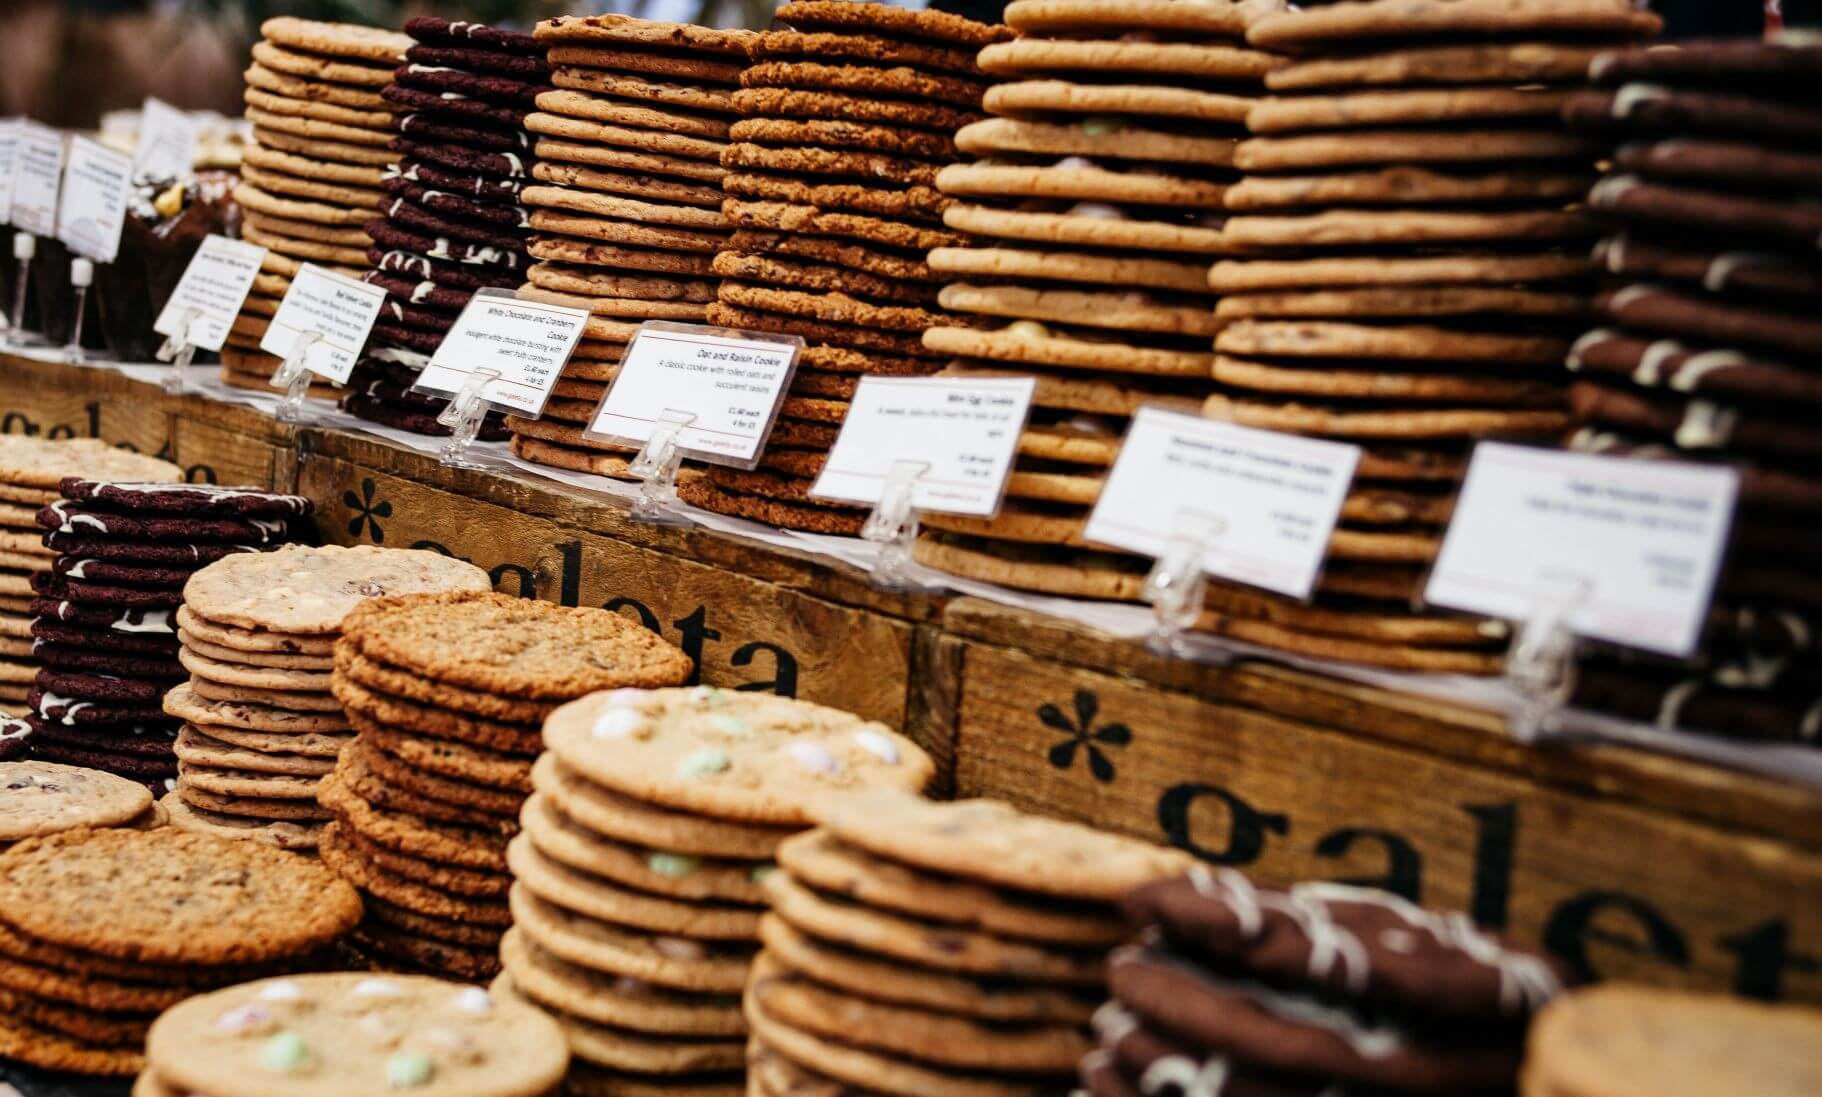 Track and understand customers' shopping habits using cookies